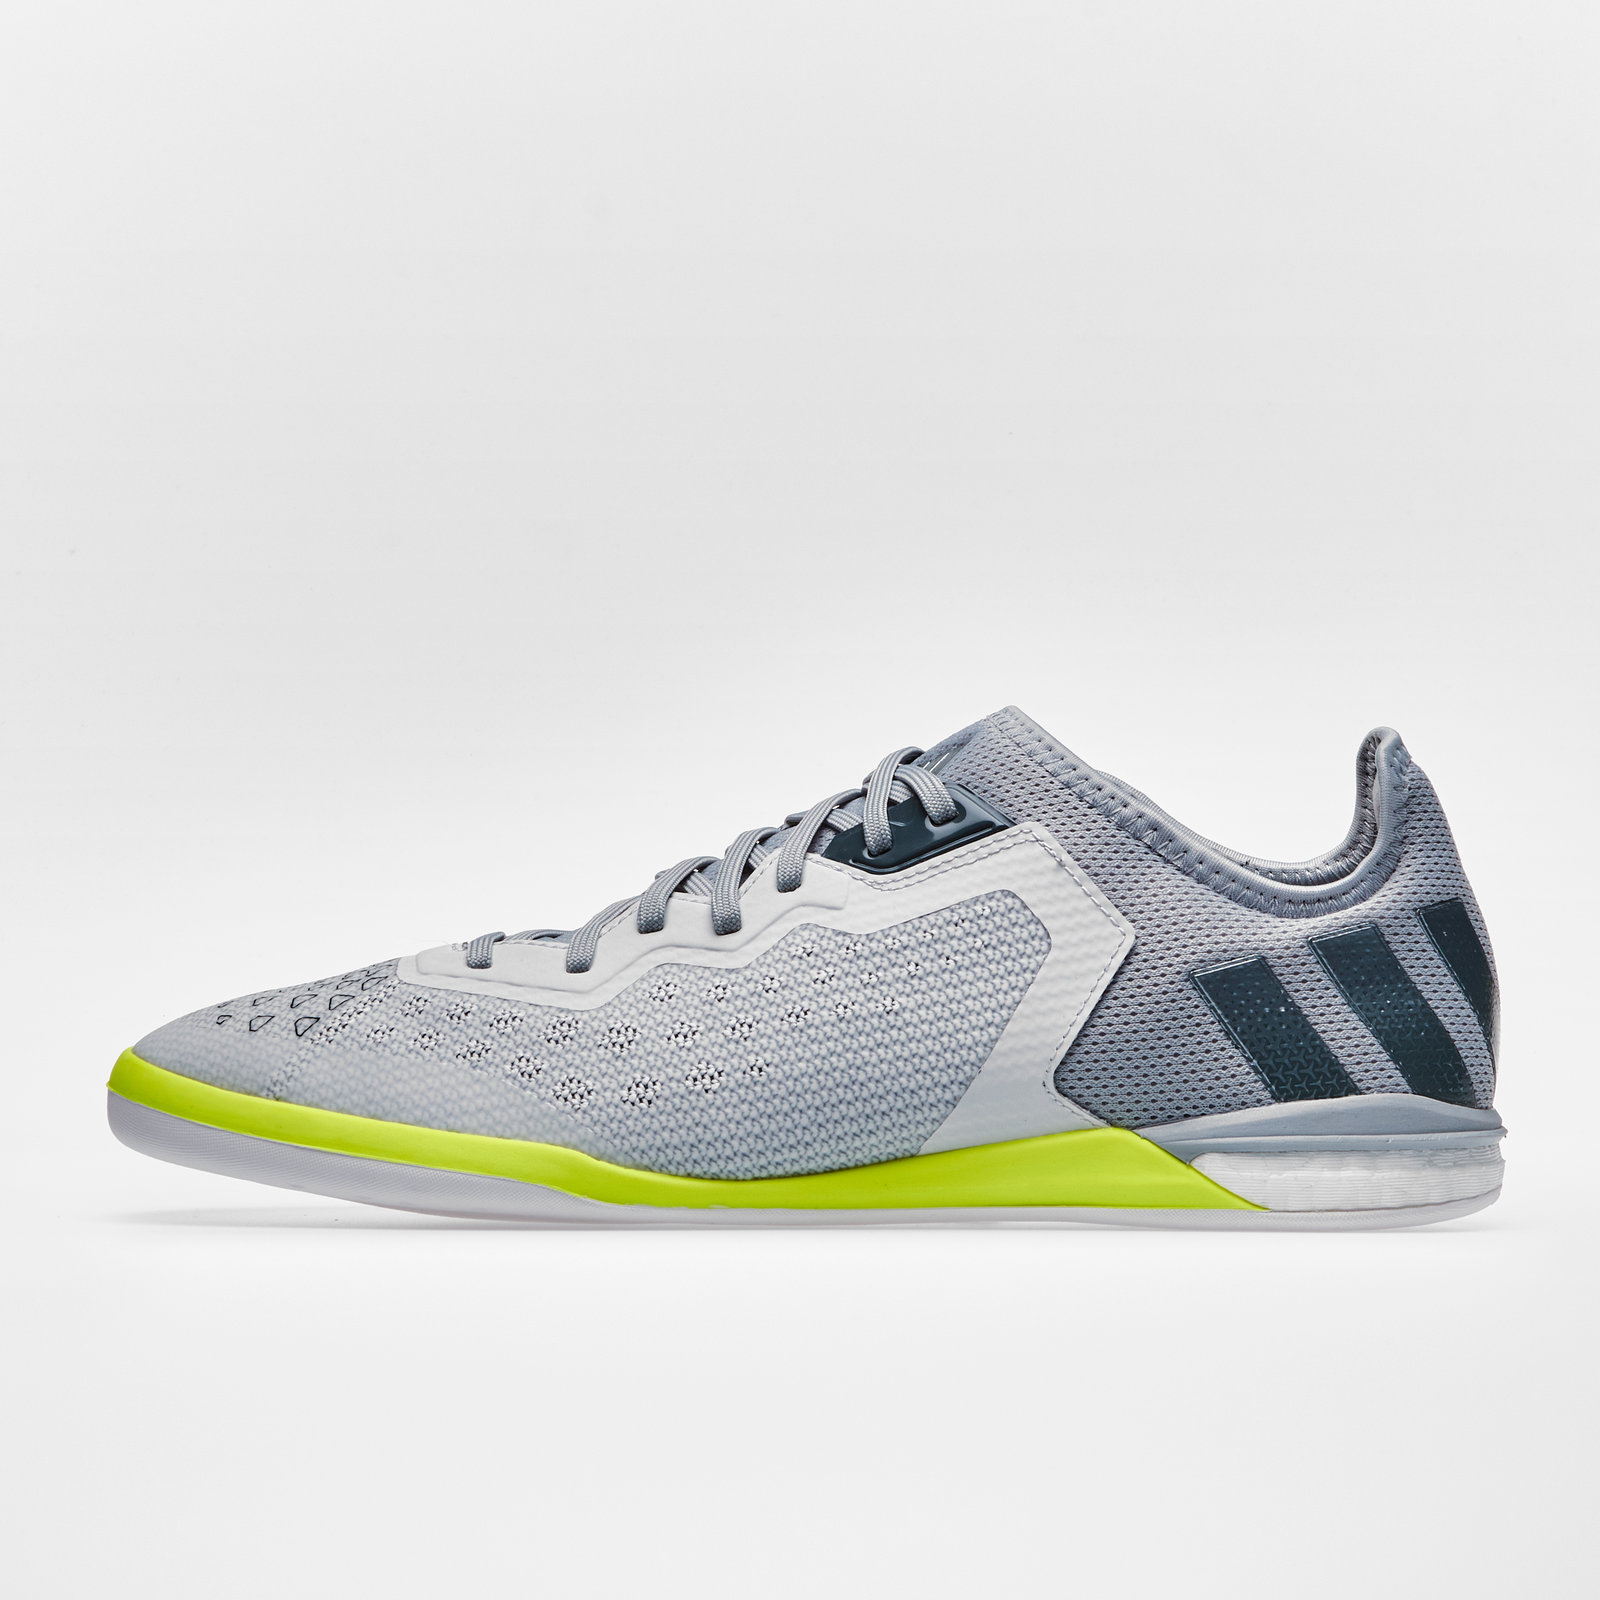 Image of Ace 16.1 Court Football Trainers